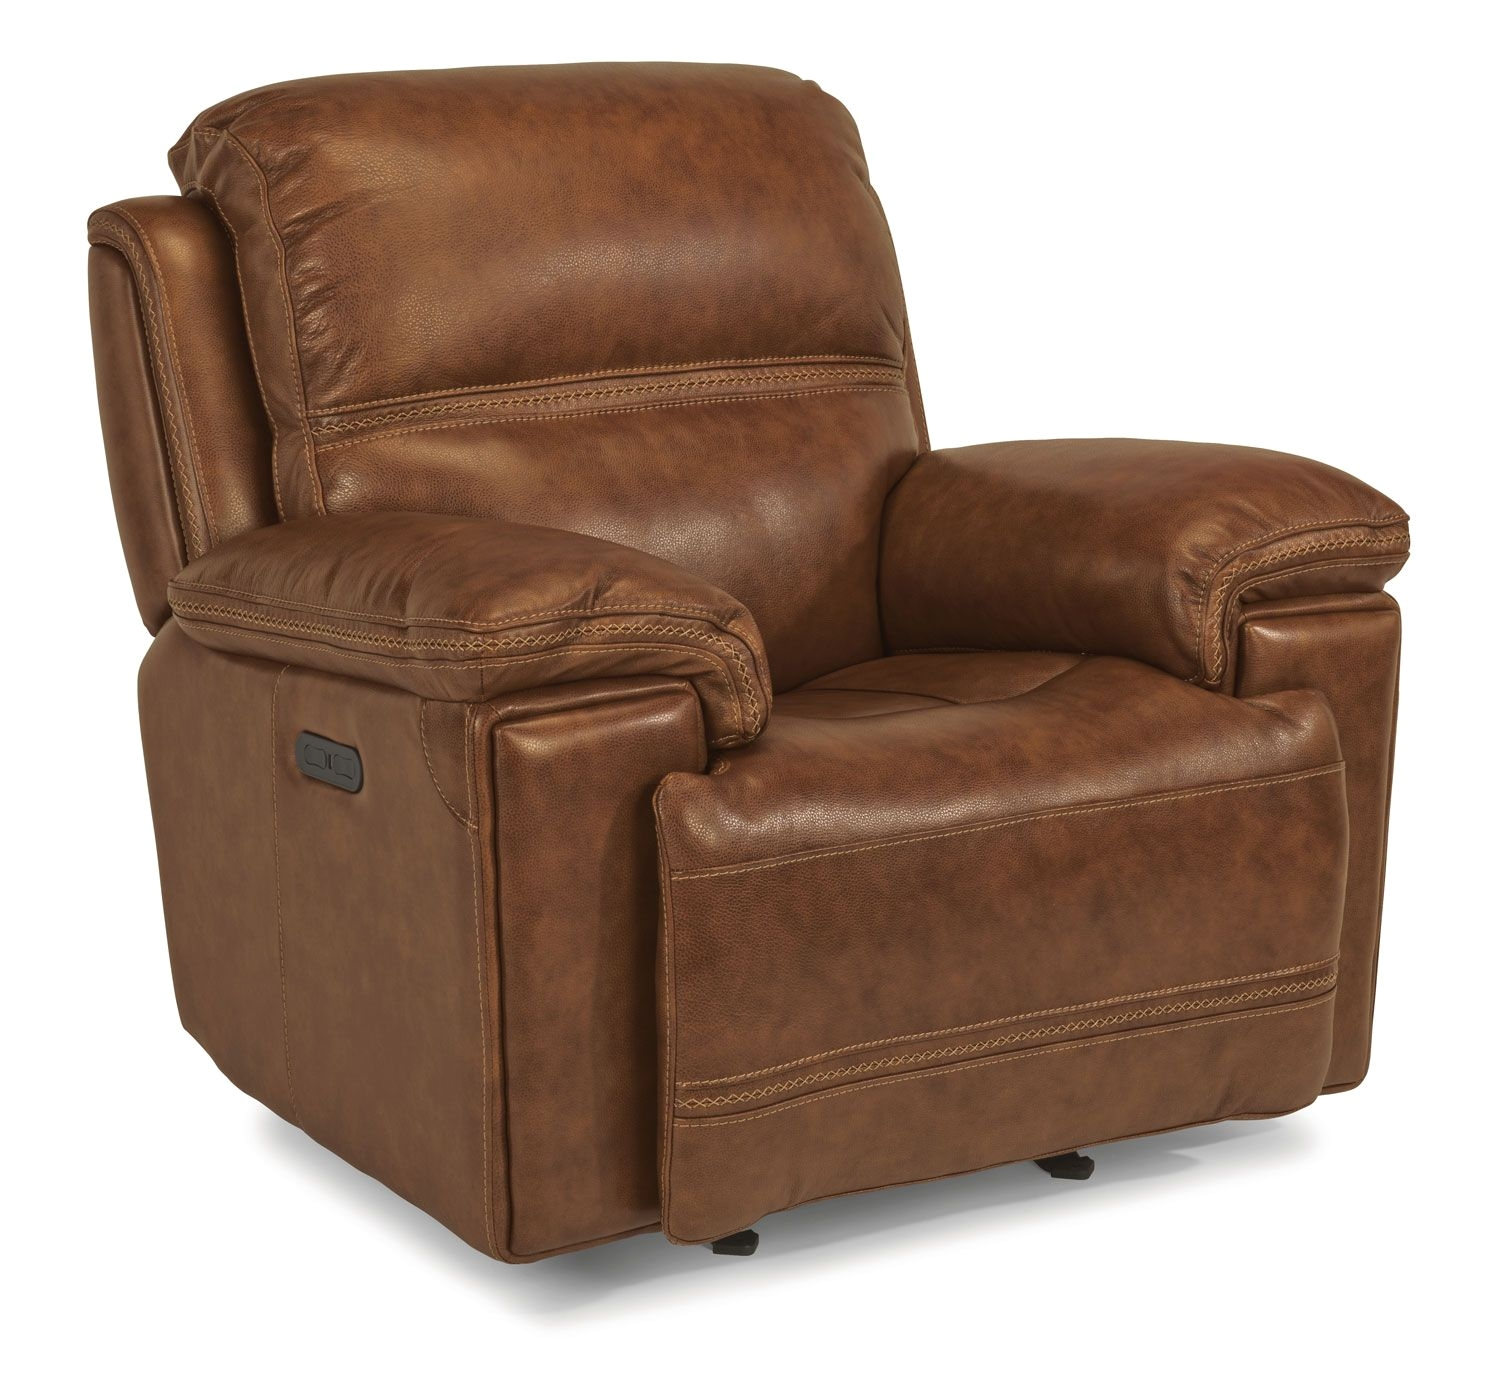 Lay Flat Recliner Chairs Uk Fenwick Leather Power Reclining sofa with Power Headrests by